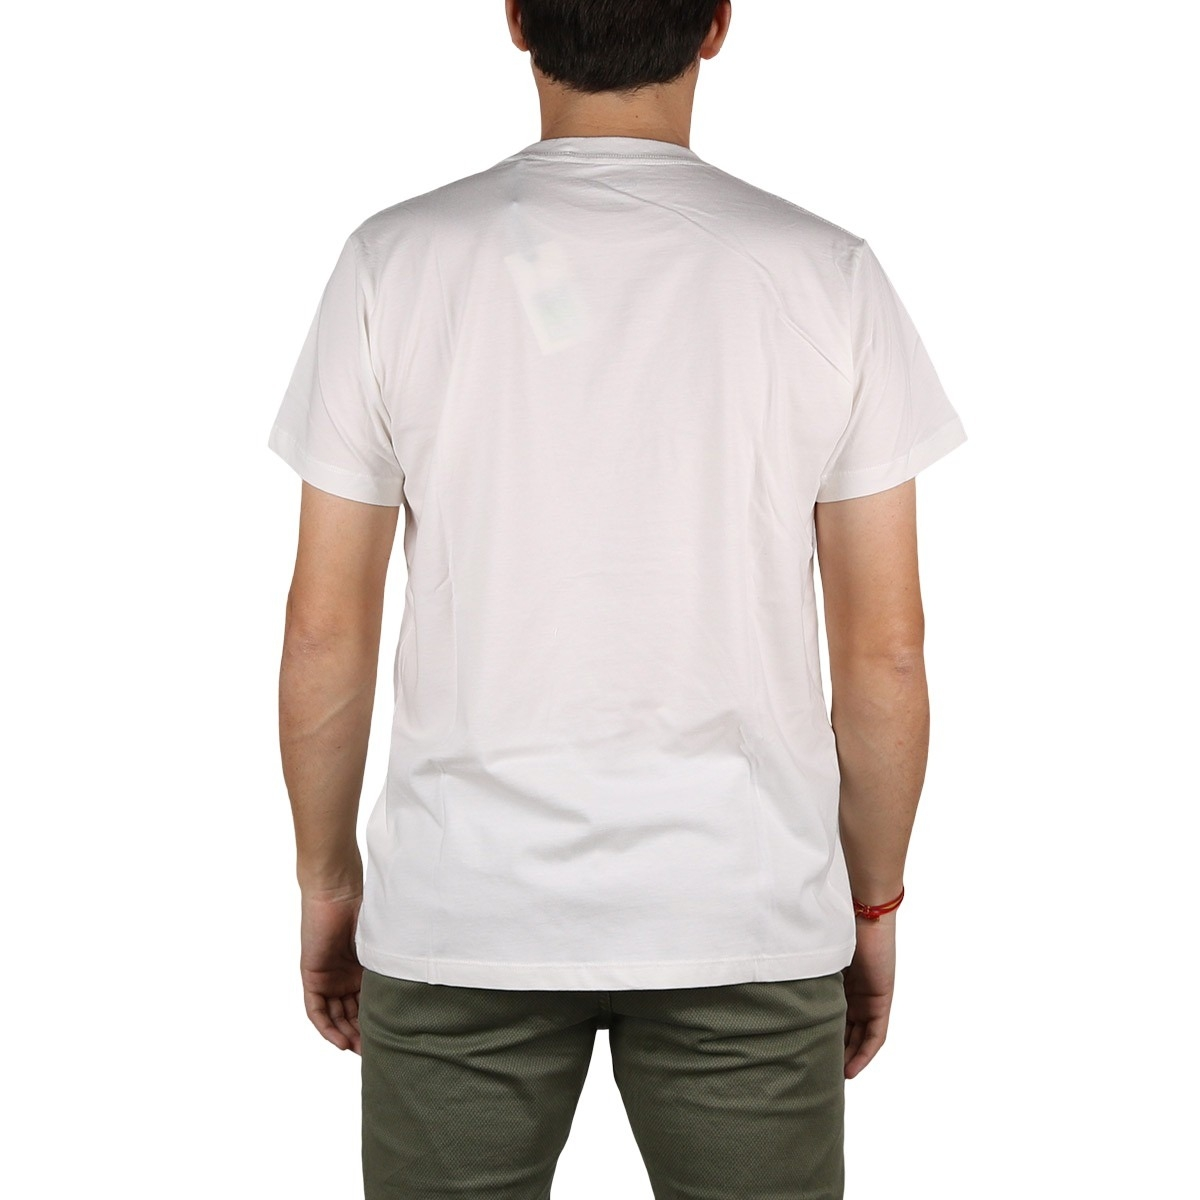 Pepe Jeans Camiseta Blackford Mousse Blanco Roto Hombre